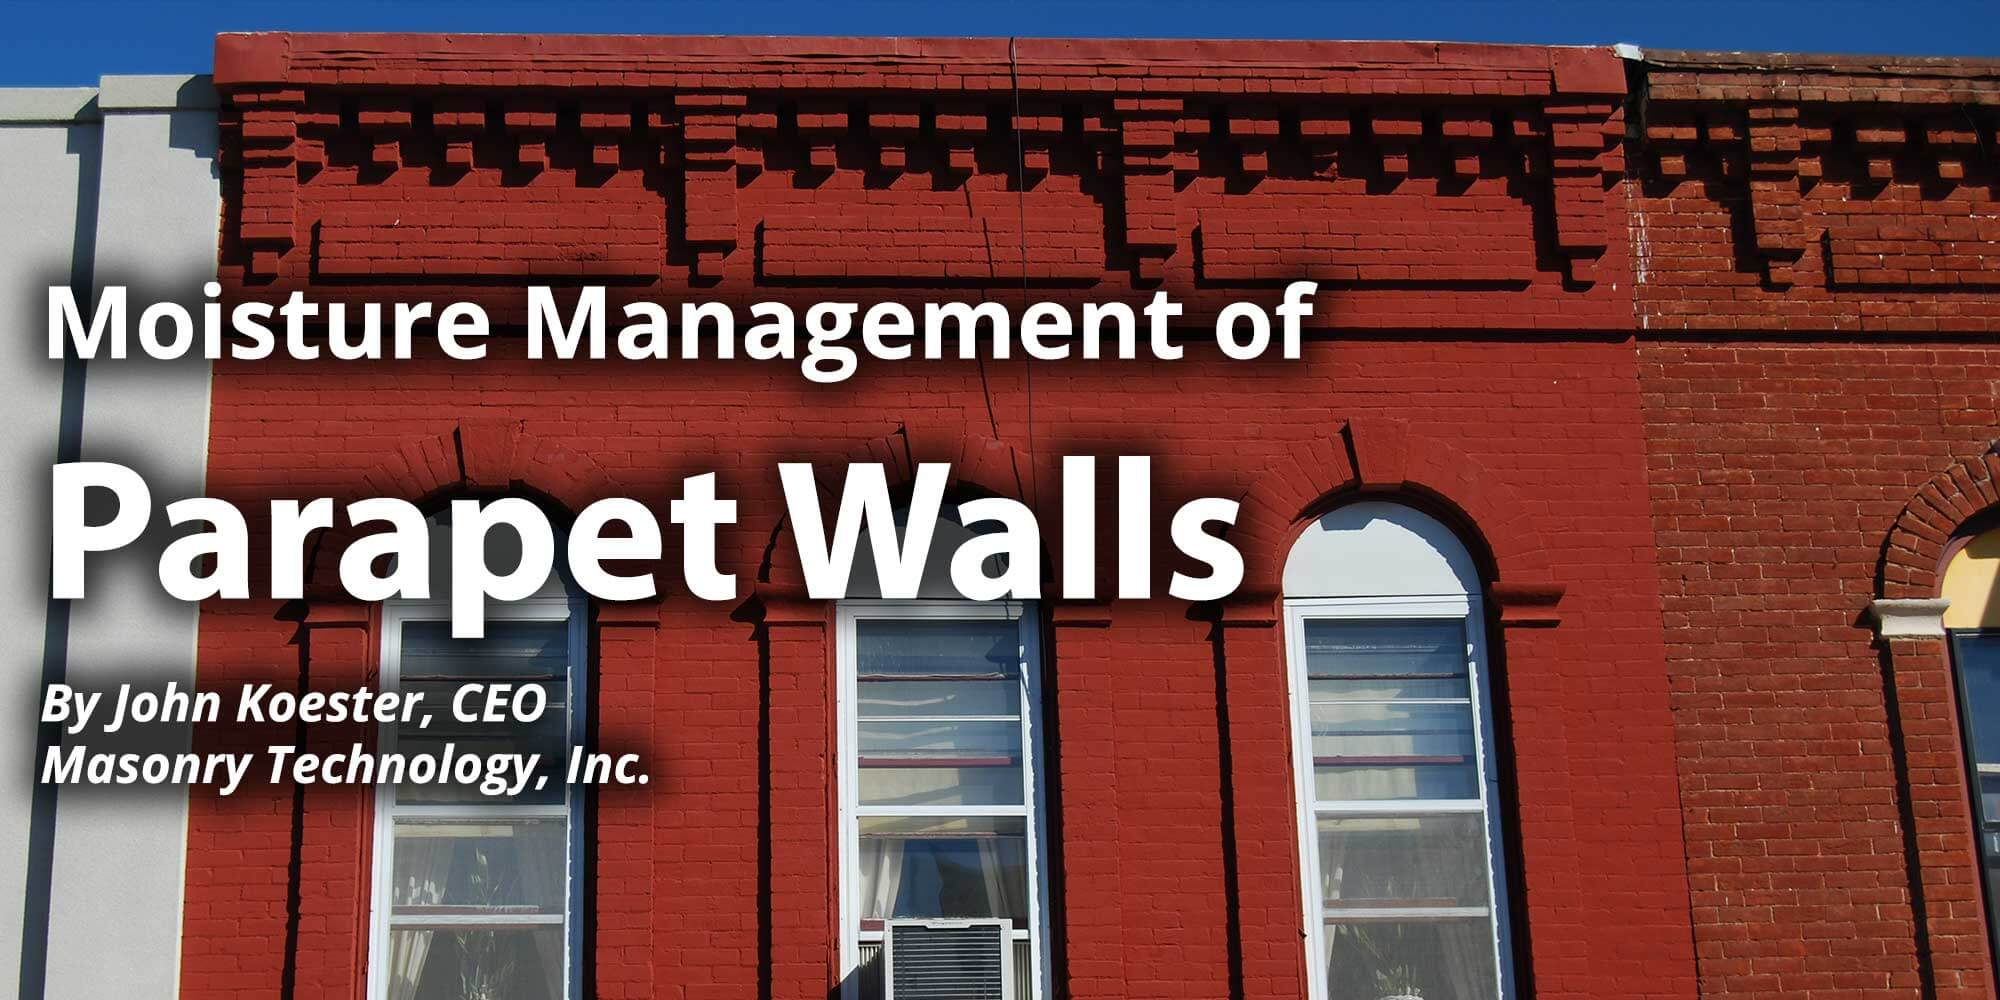 Moisture Management of Parapet Walls